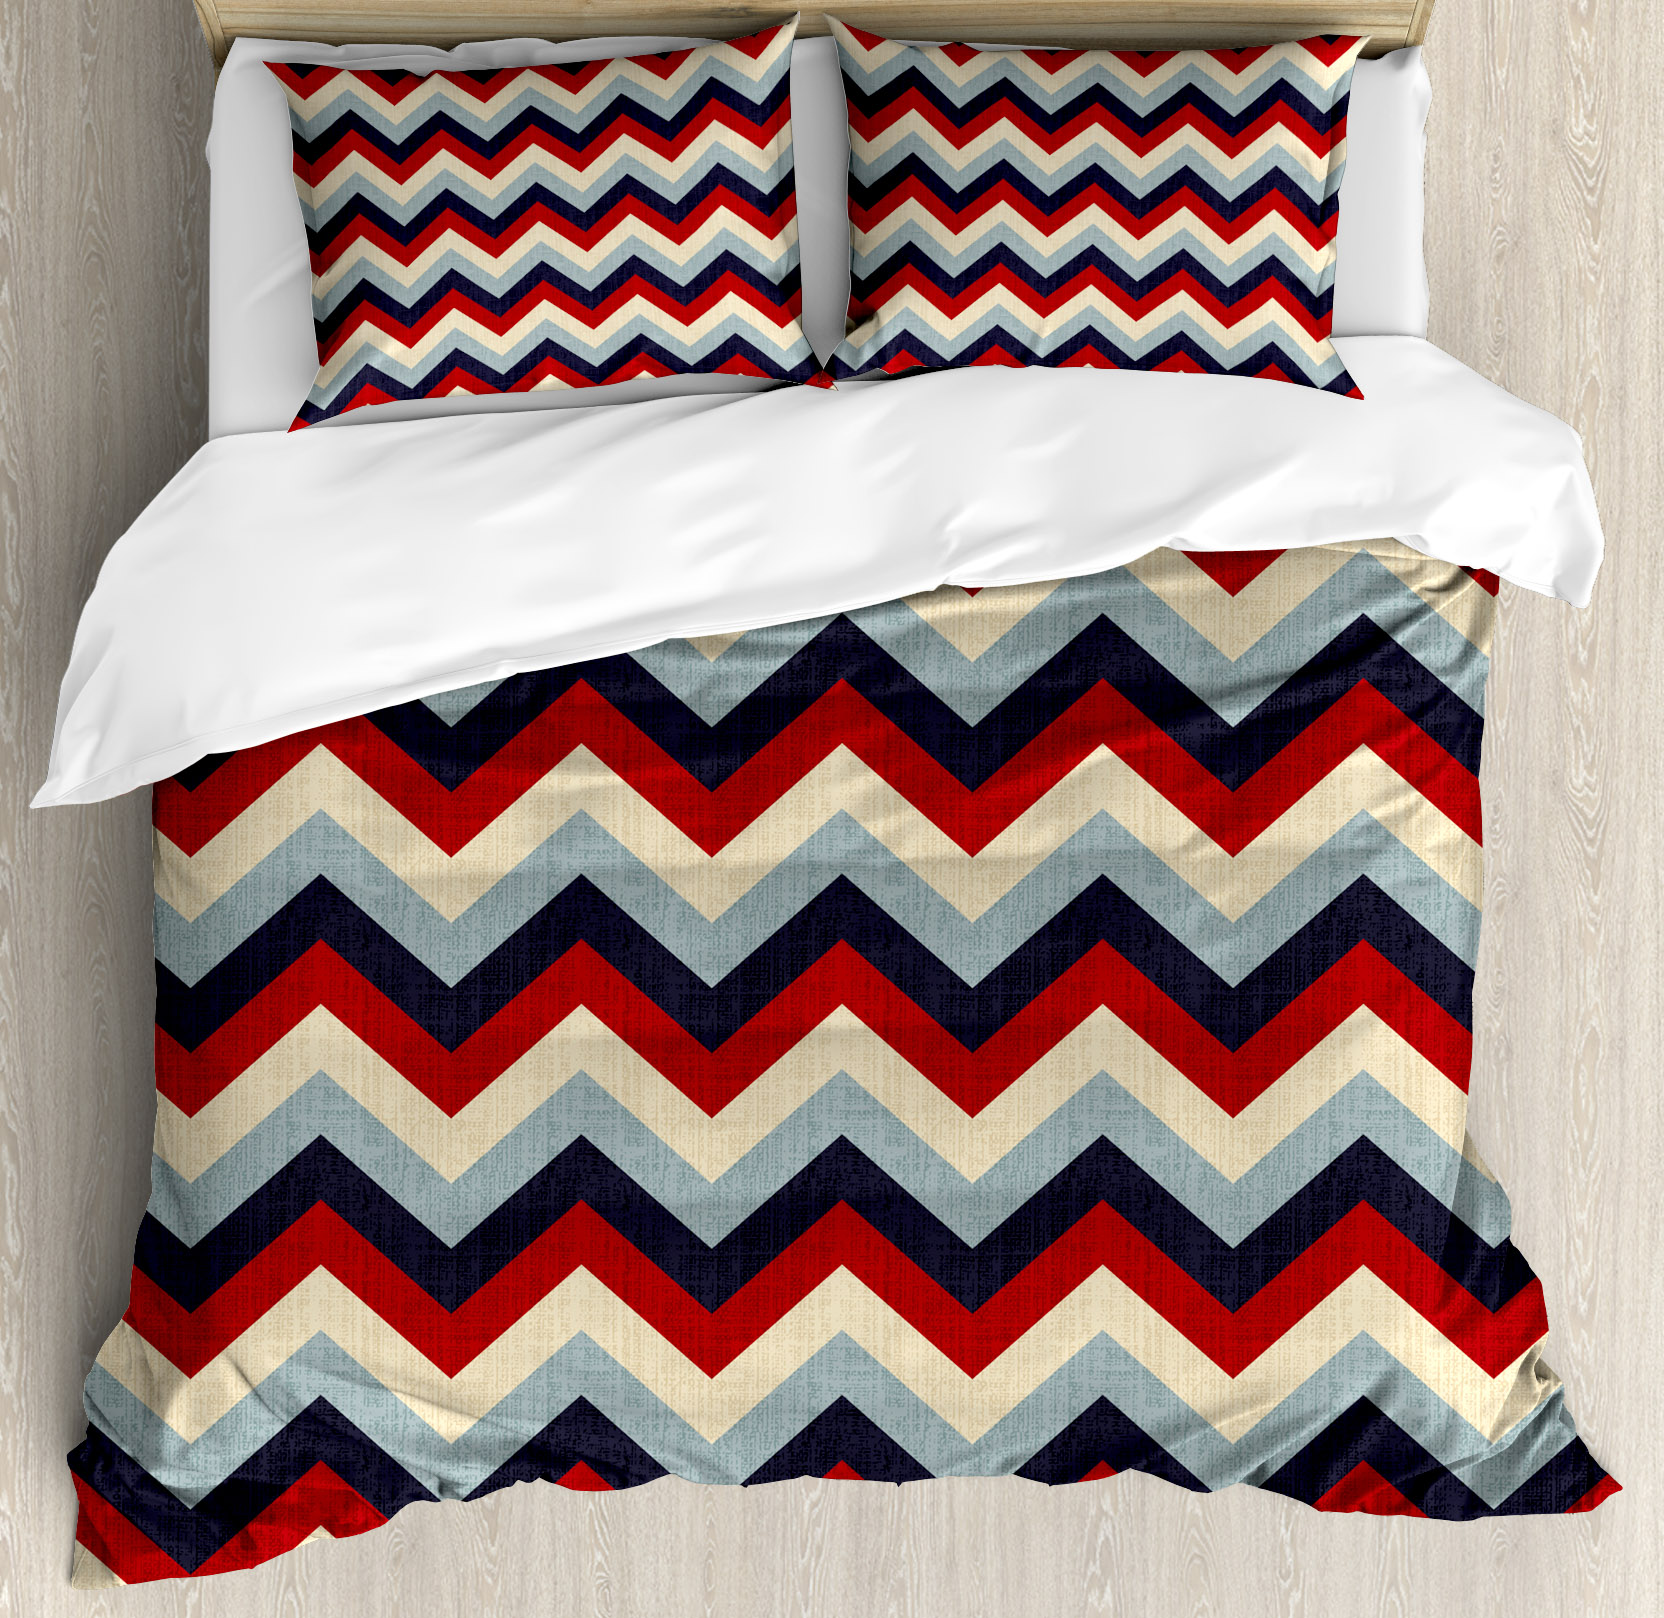 Chevron King Size Duvet Cover Set, Triangle Abstract Geom...